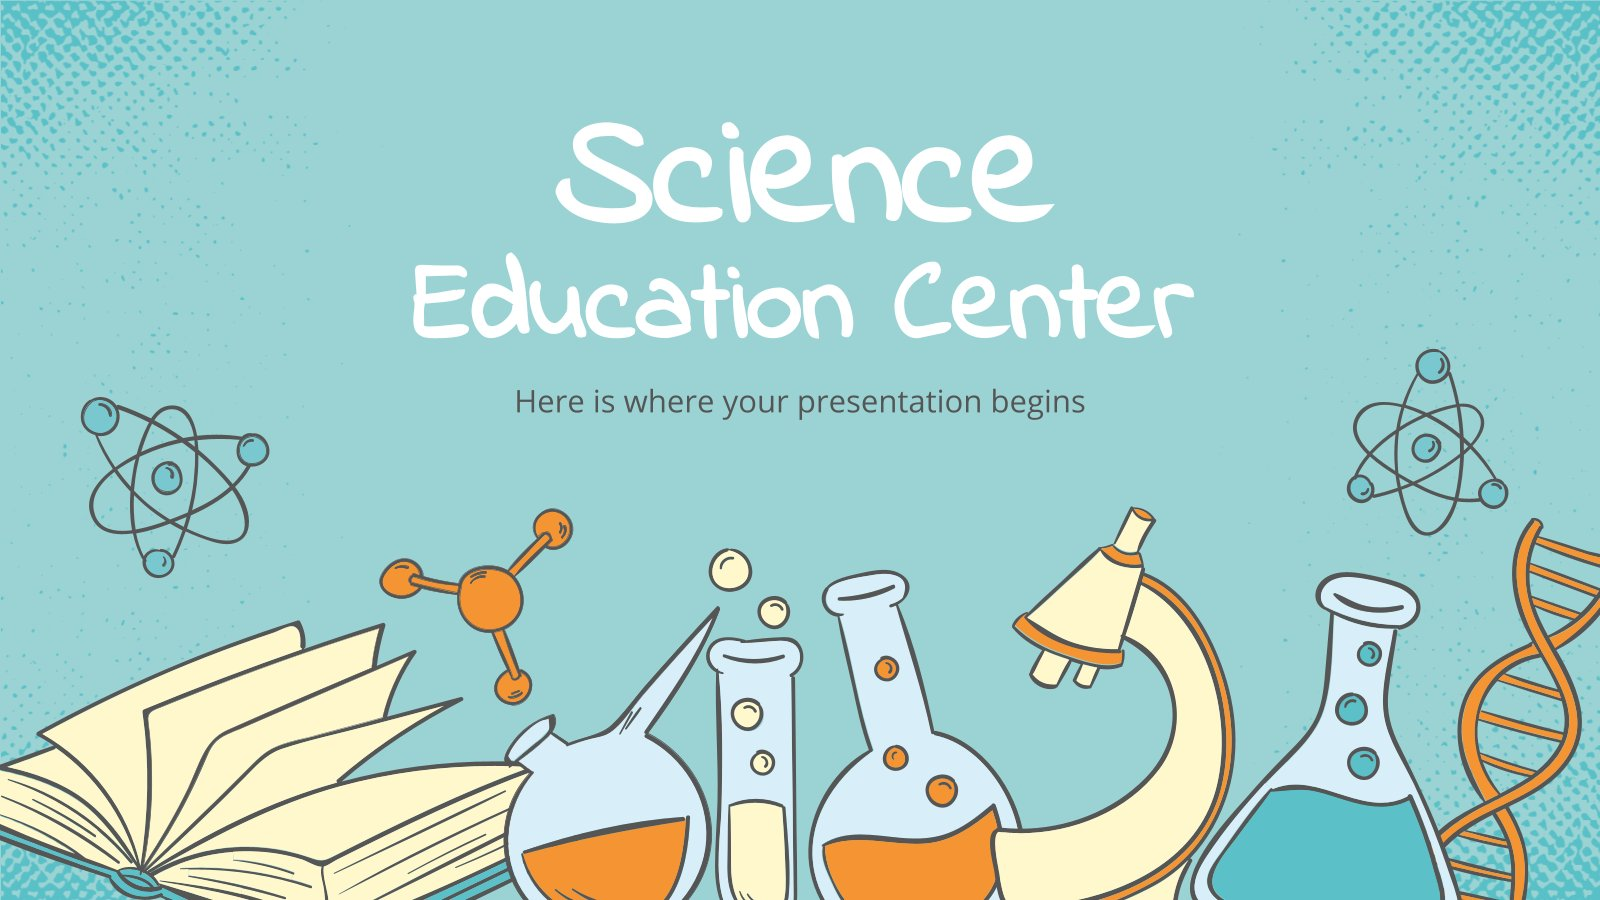 Science Education Center presentation template